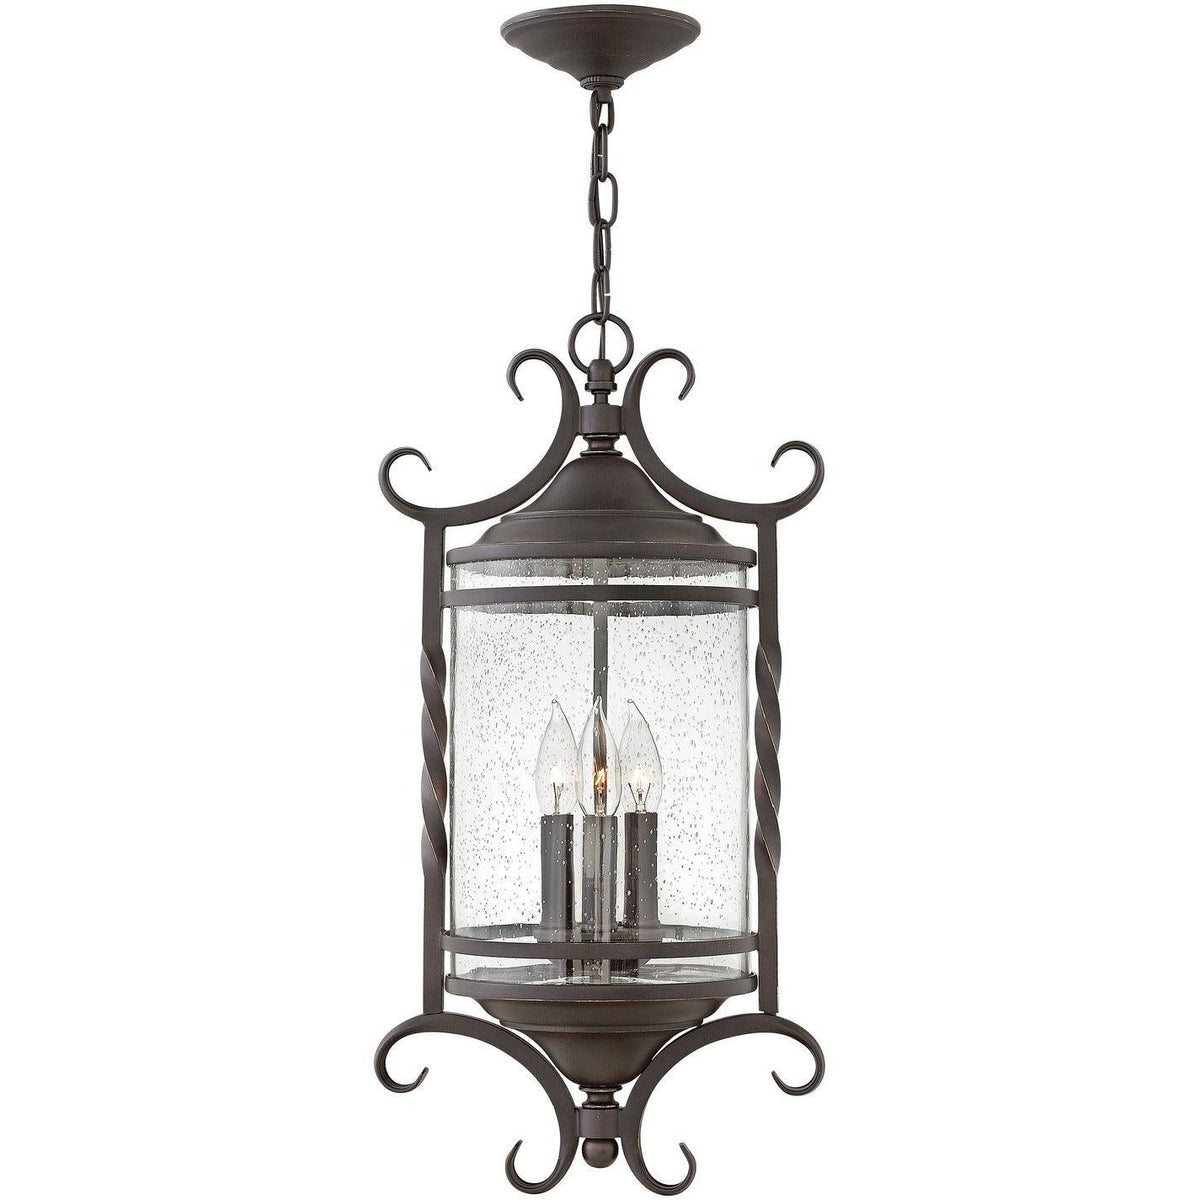 Hinkley Canada - 1147OL-CL - Three Light Hanging Lantern - Casa - Olde Black With Clear Seedy Glass